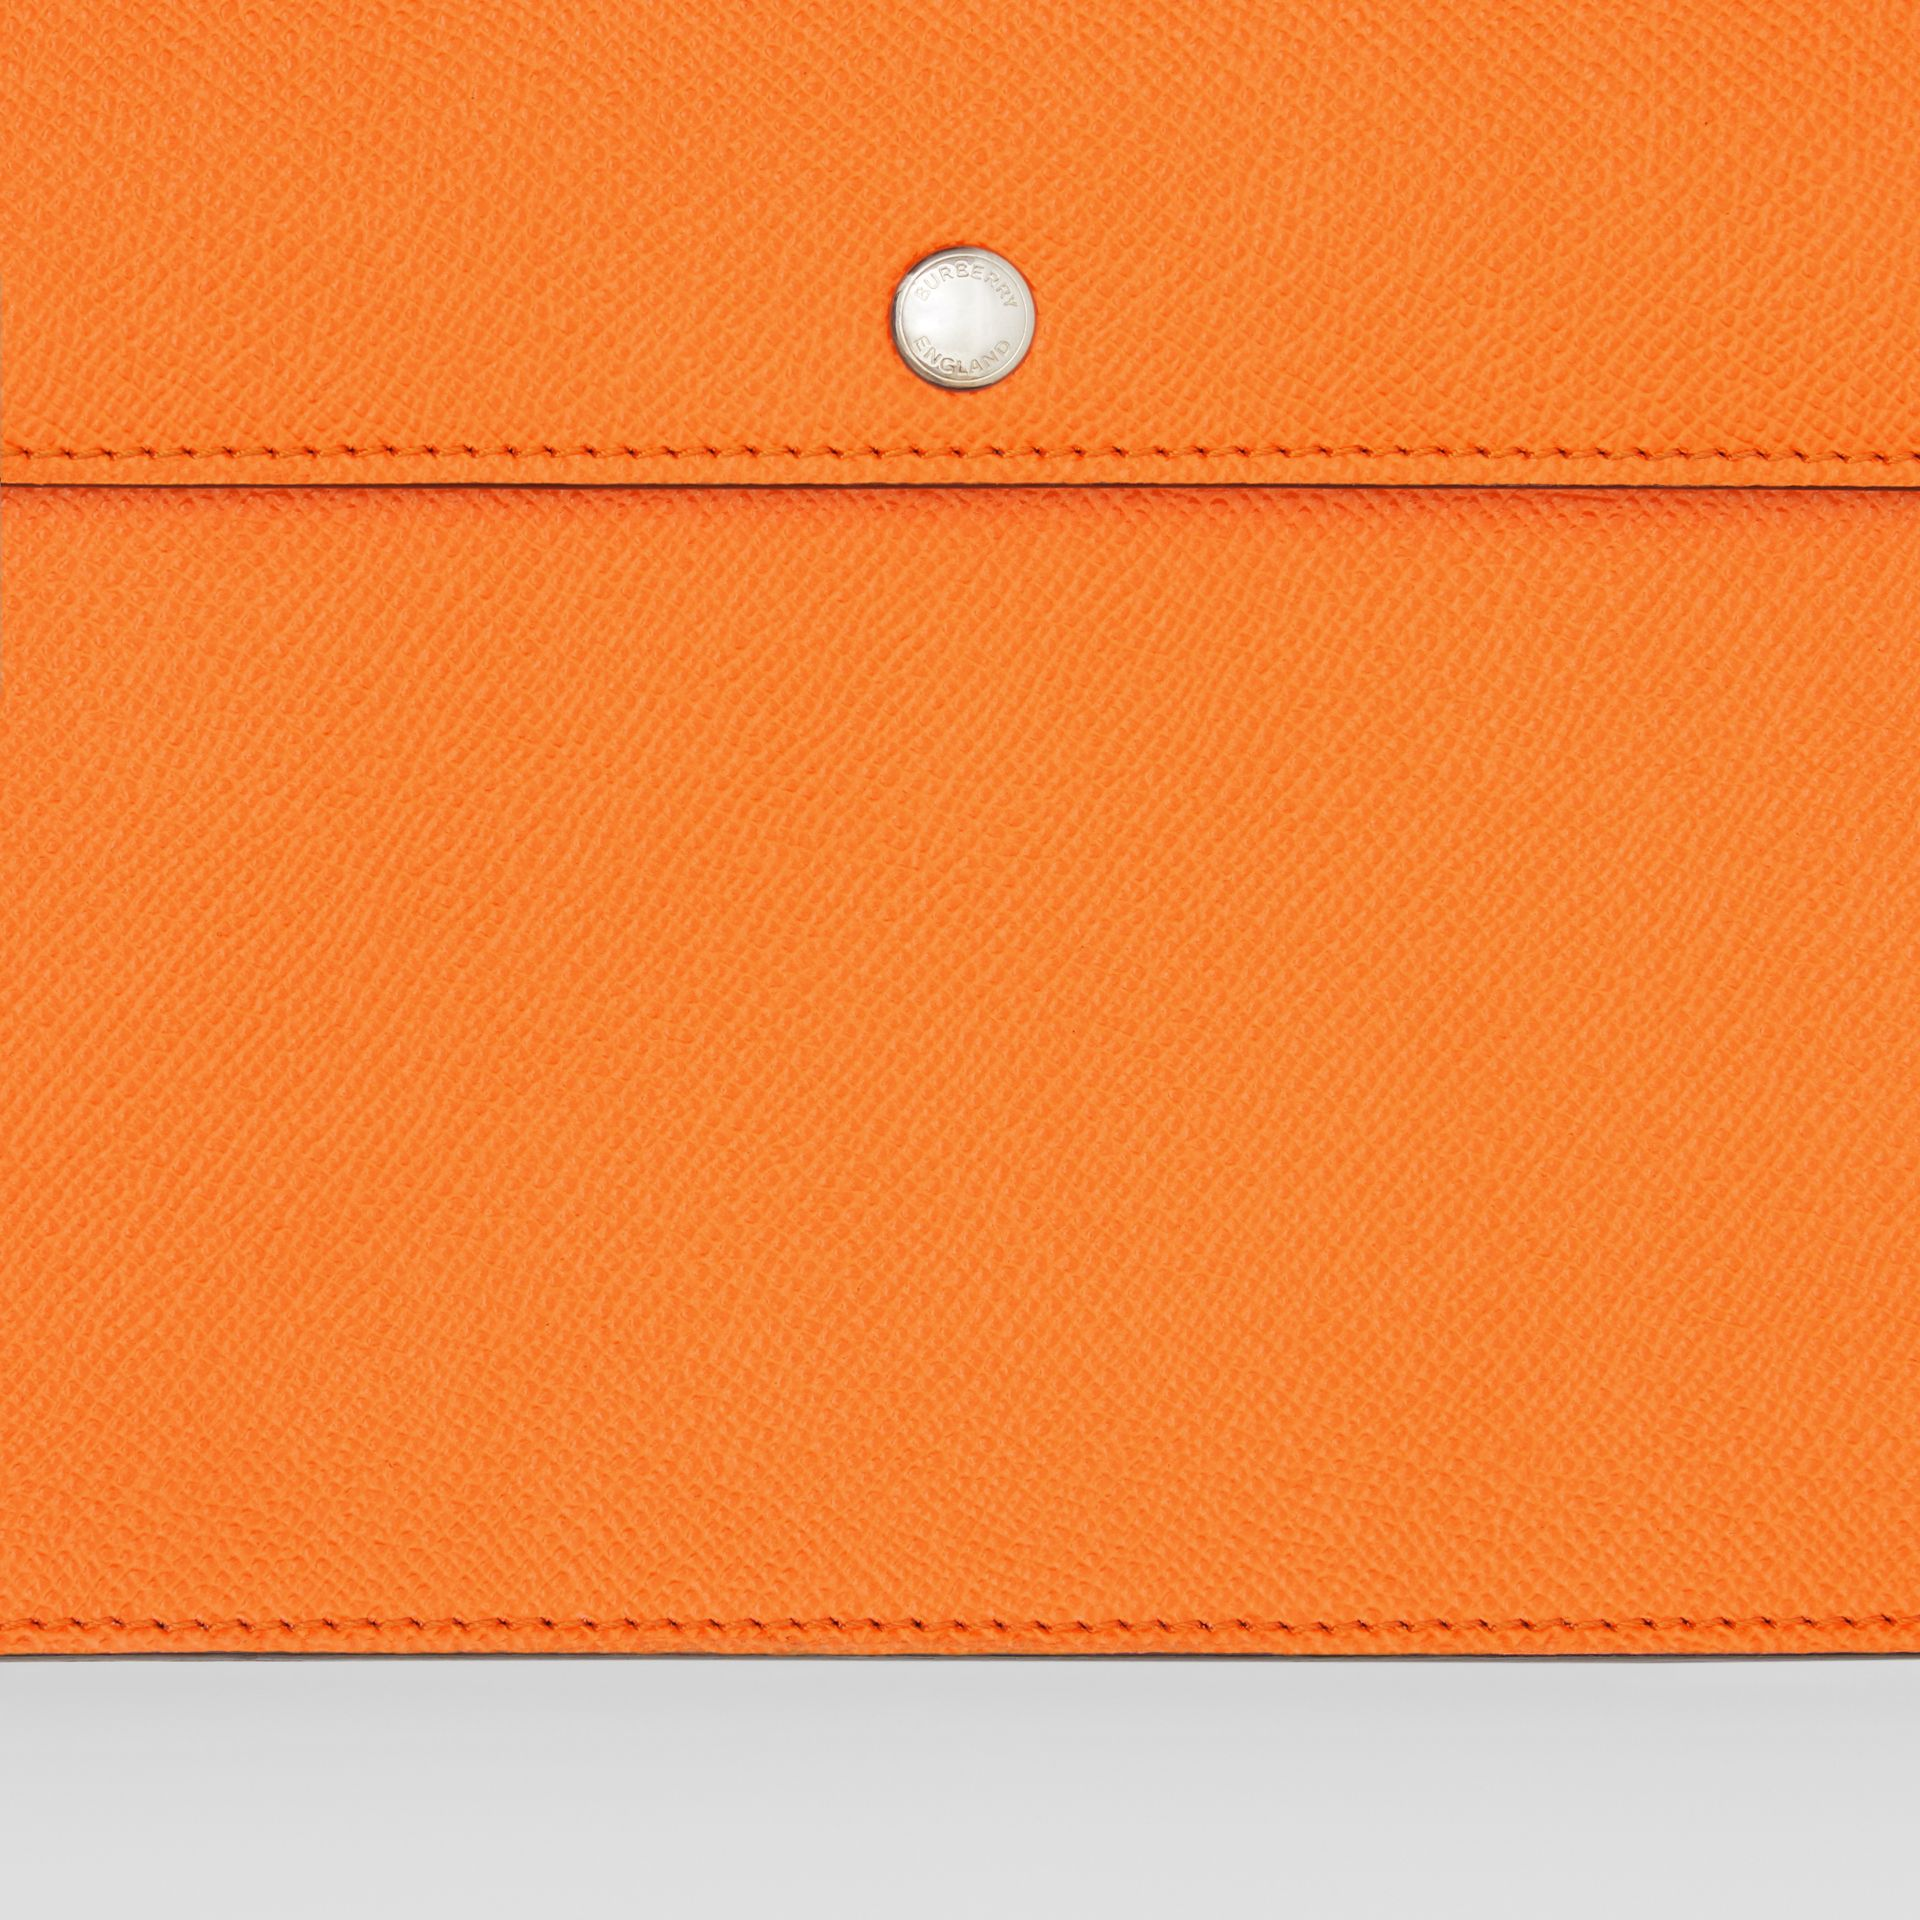 Triple Stud Grainy Leather Crossbody Bag in Bright Orange - Men | Burberry - gallery image 1